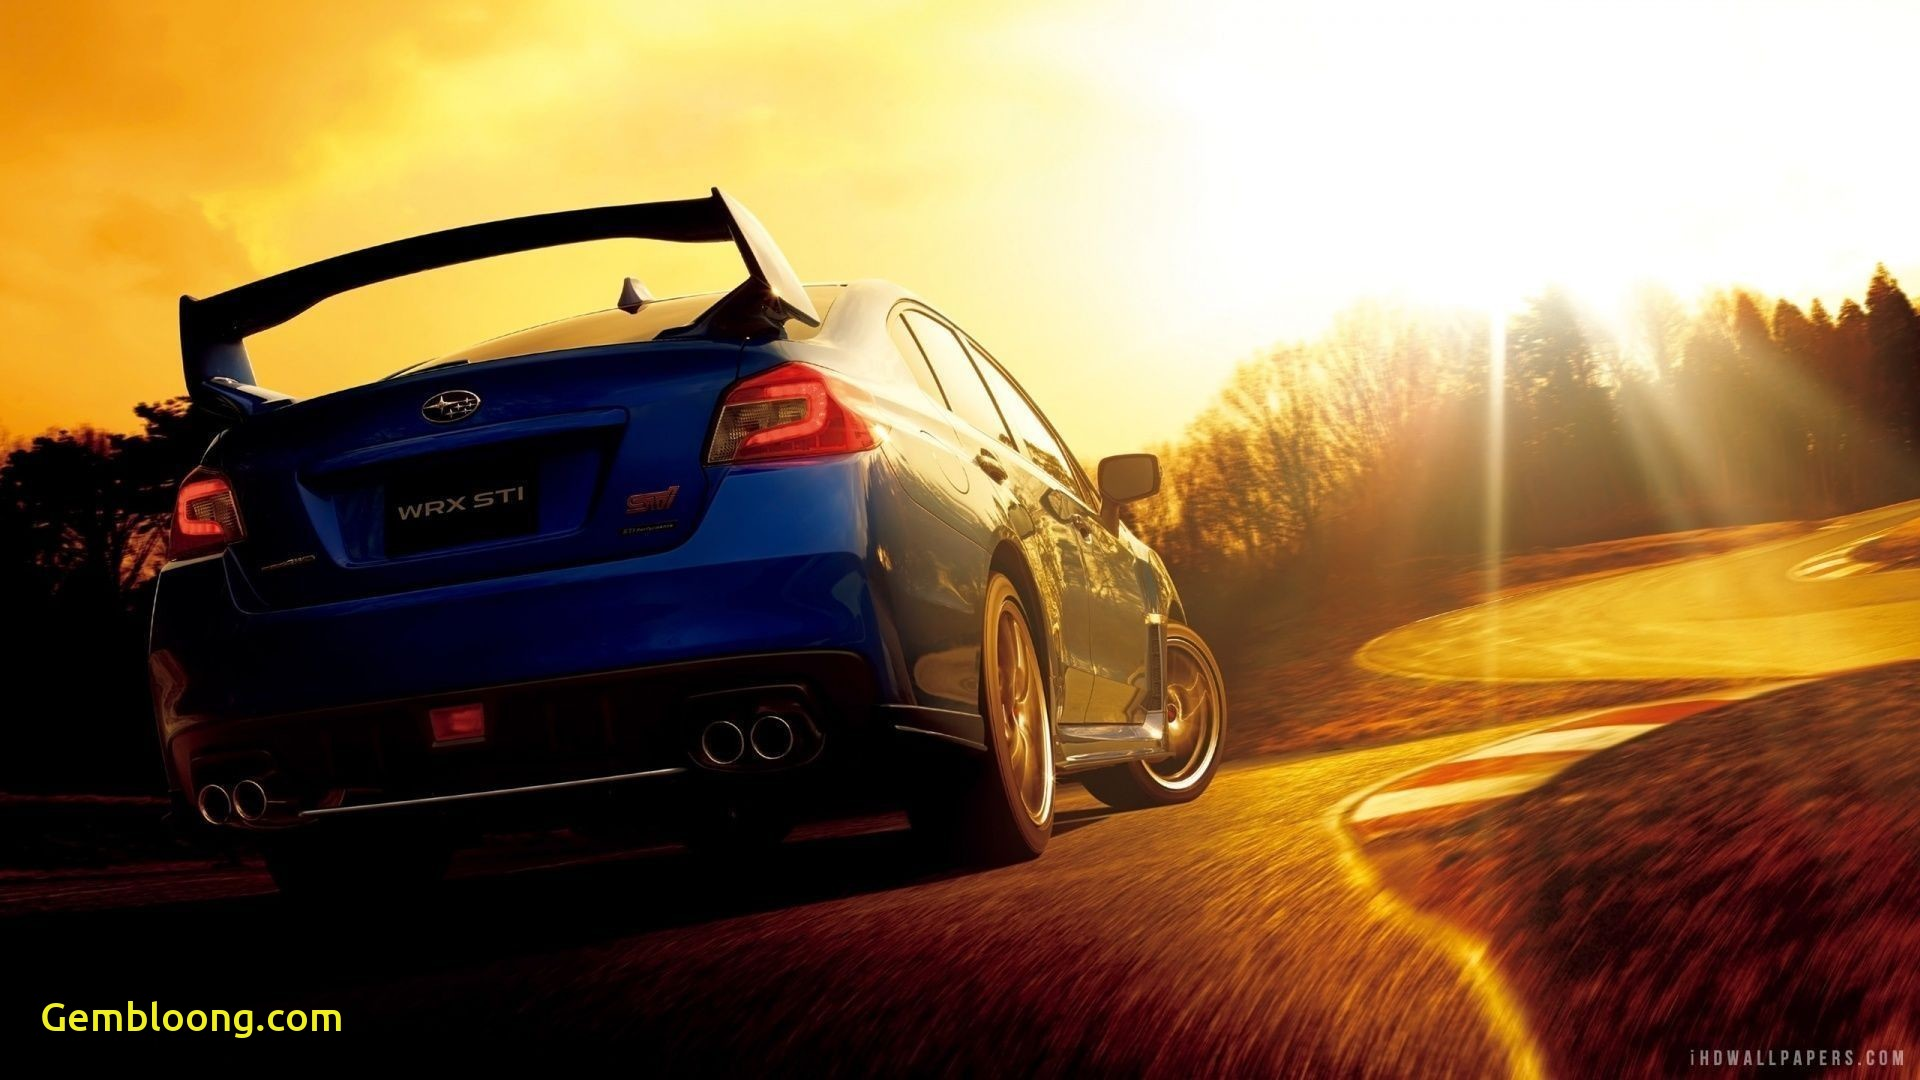 2015 Subaru Wrx Luxury Subaru iPhone Wallpaper 74 Images